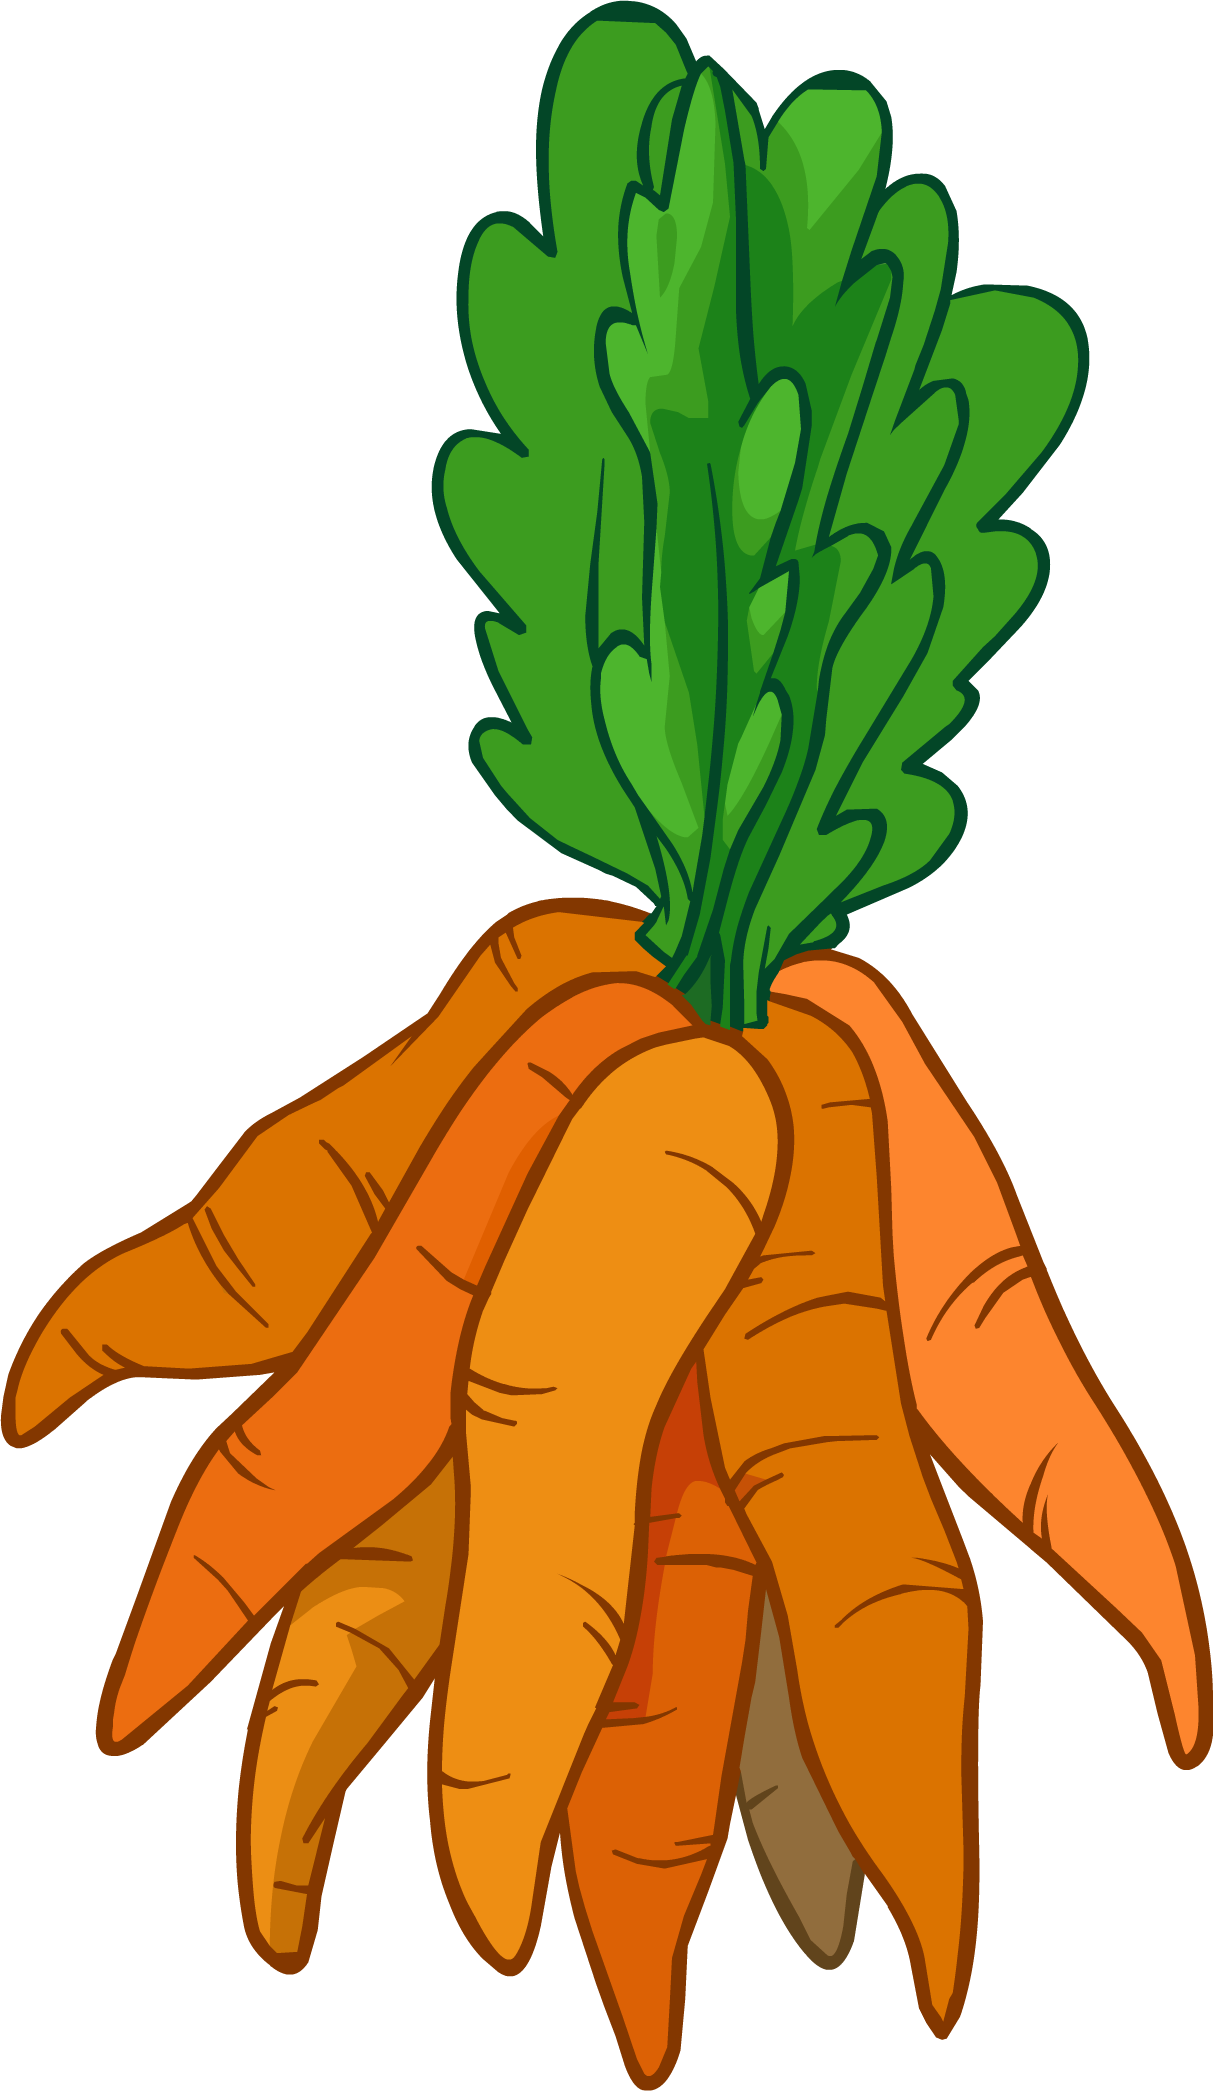 Clipart reindeer icon. Carrots club penguin wiki